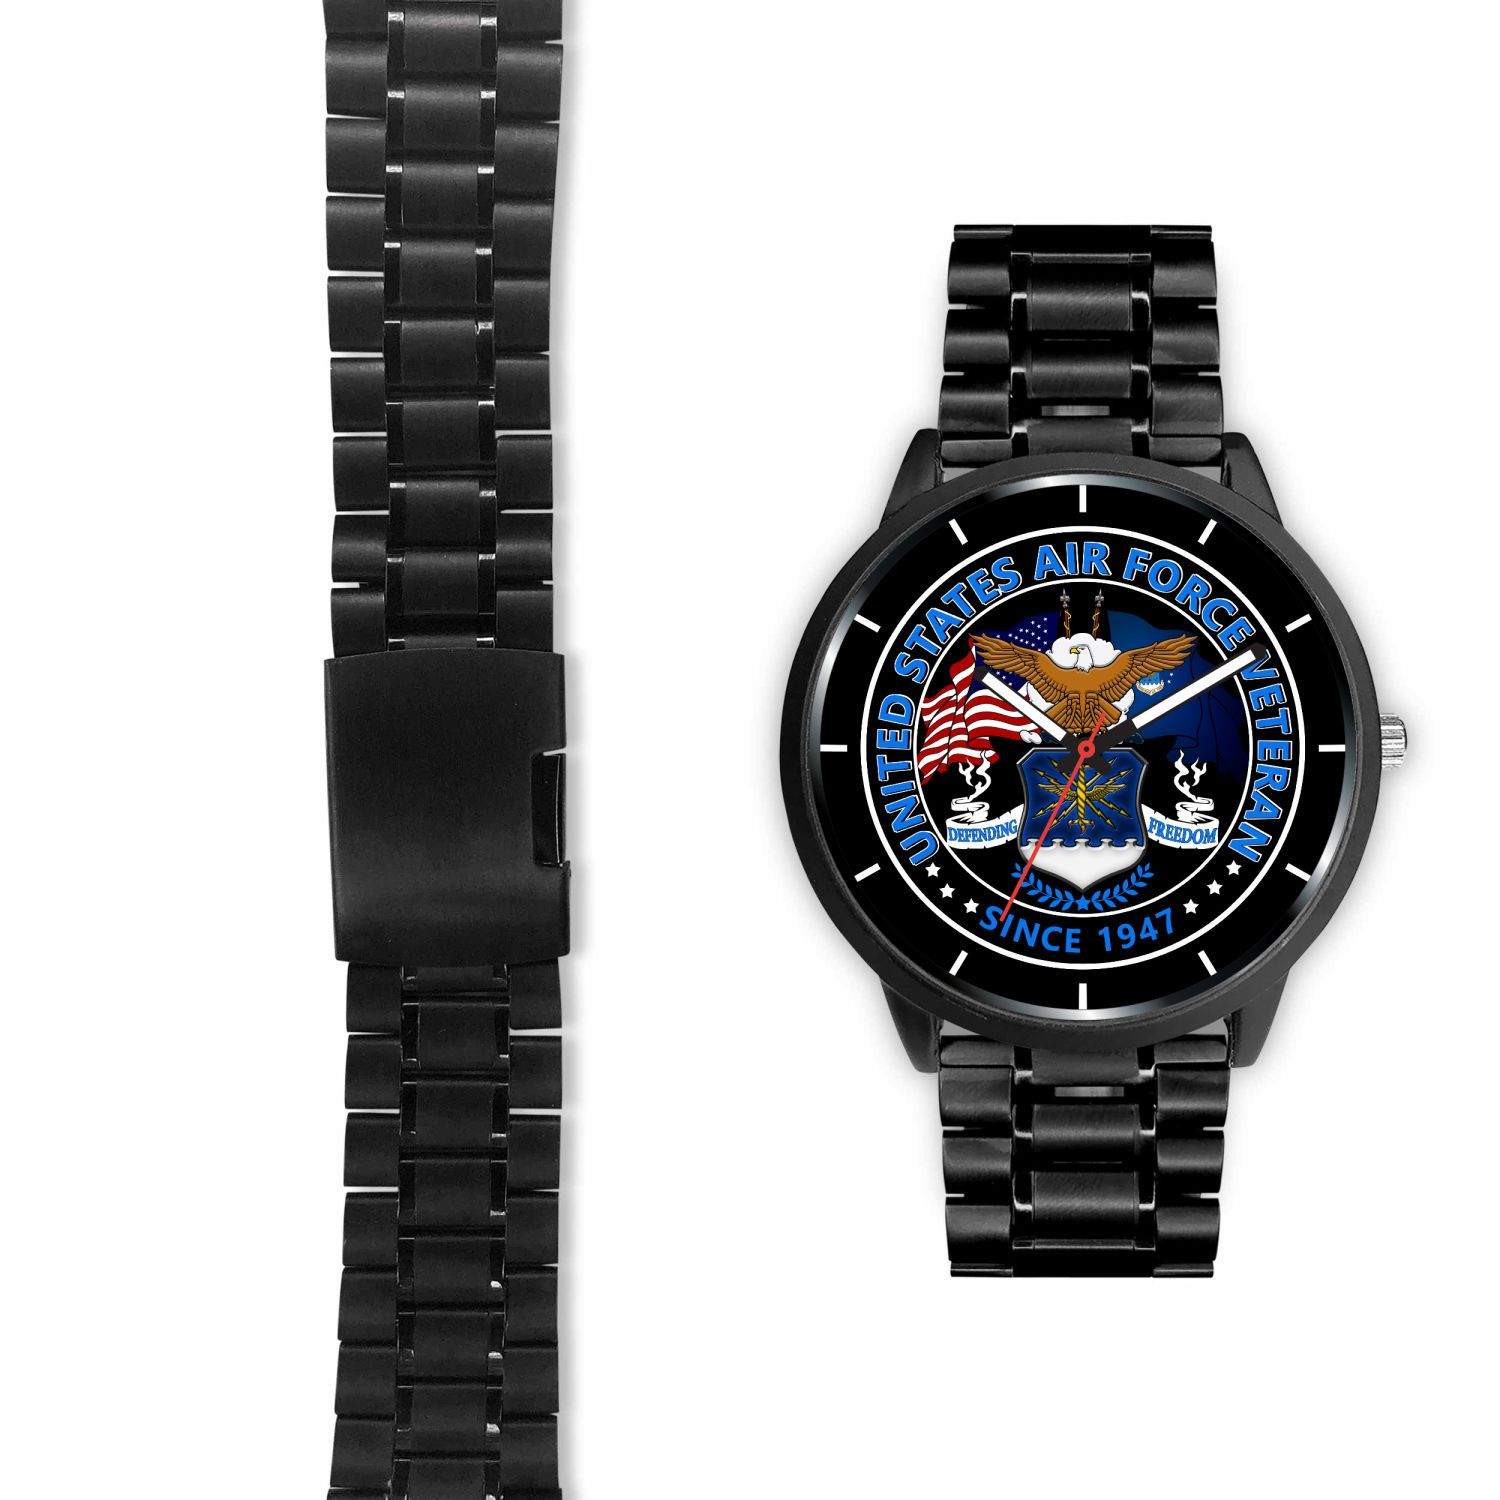 air-force-veteran_b57b7297-0eff-983b-3bd9-d4f952bd9775 Air force veteran since 1947 WATCH  %tag